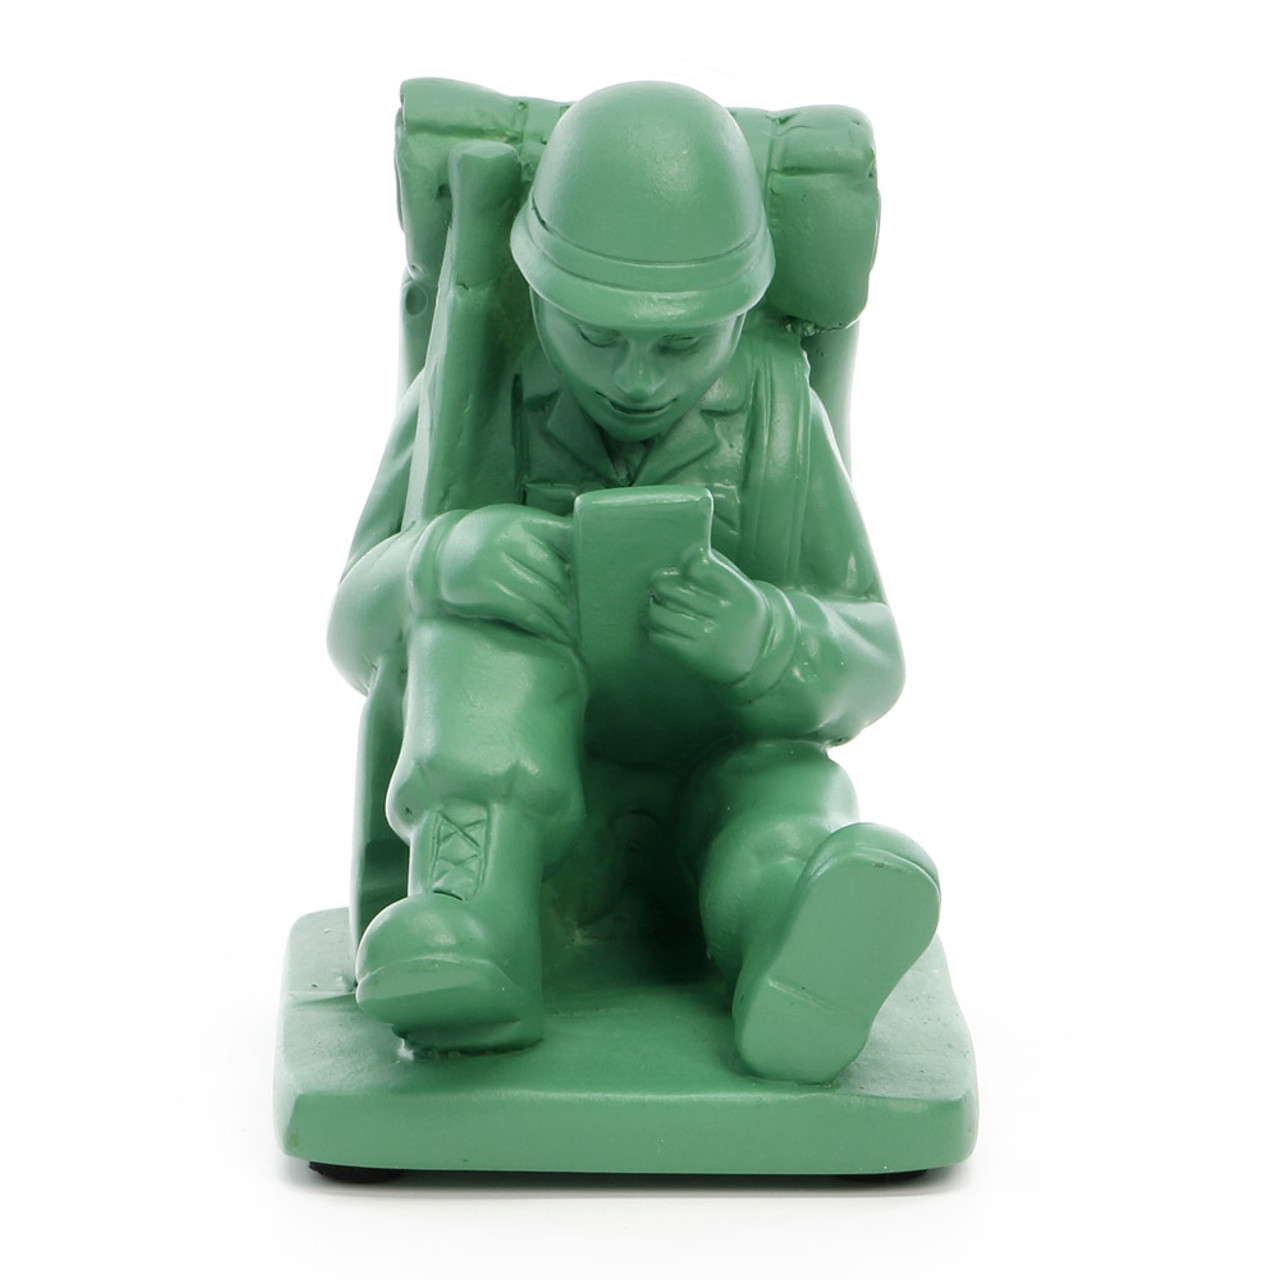 Seto Craft Motif Hand Painting Cellphone / Mobile Device Stand - Mini Soldier ( Front View )